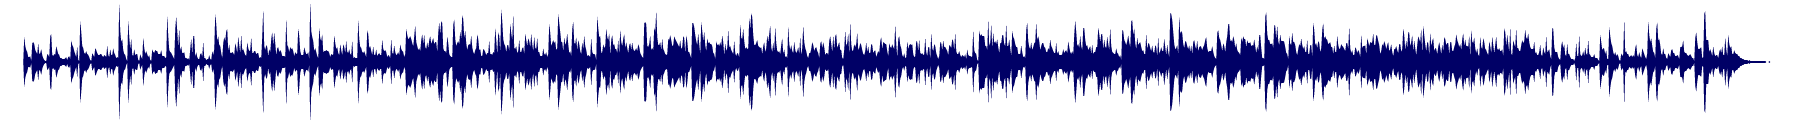 waveform of track #71808